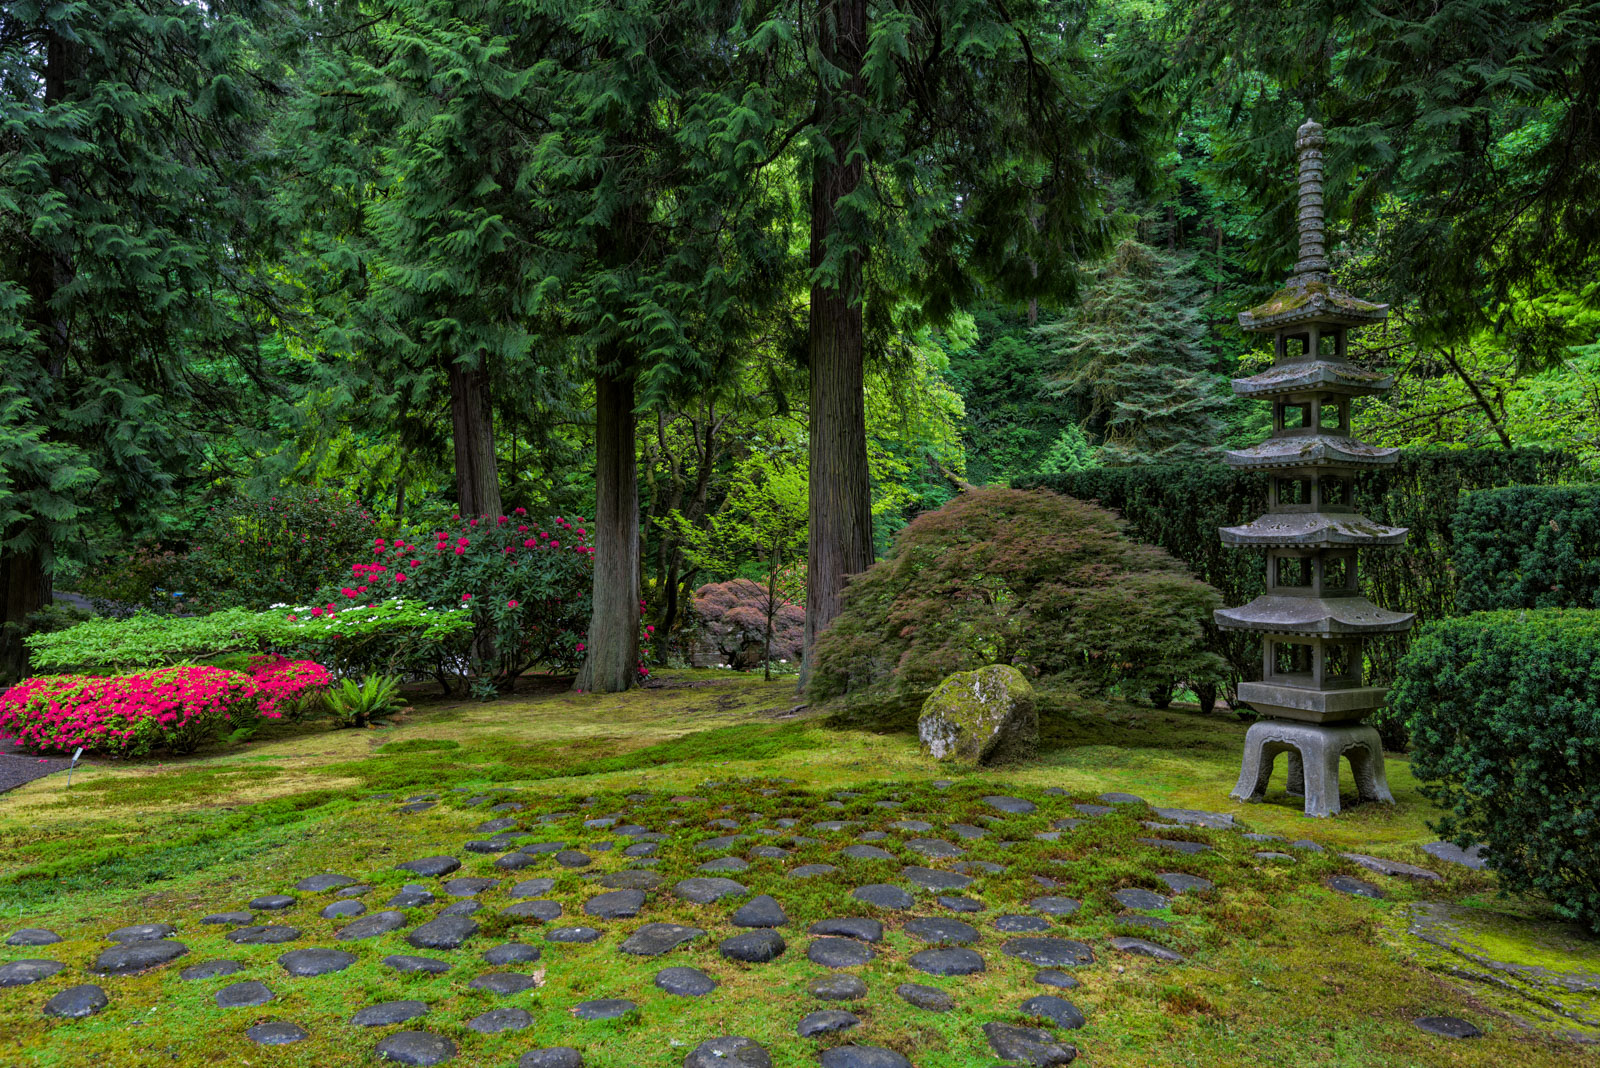 Planning A Visit To The Garden? Start Here.